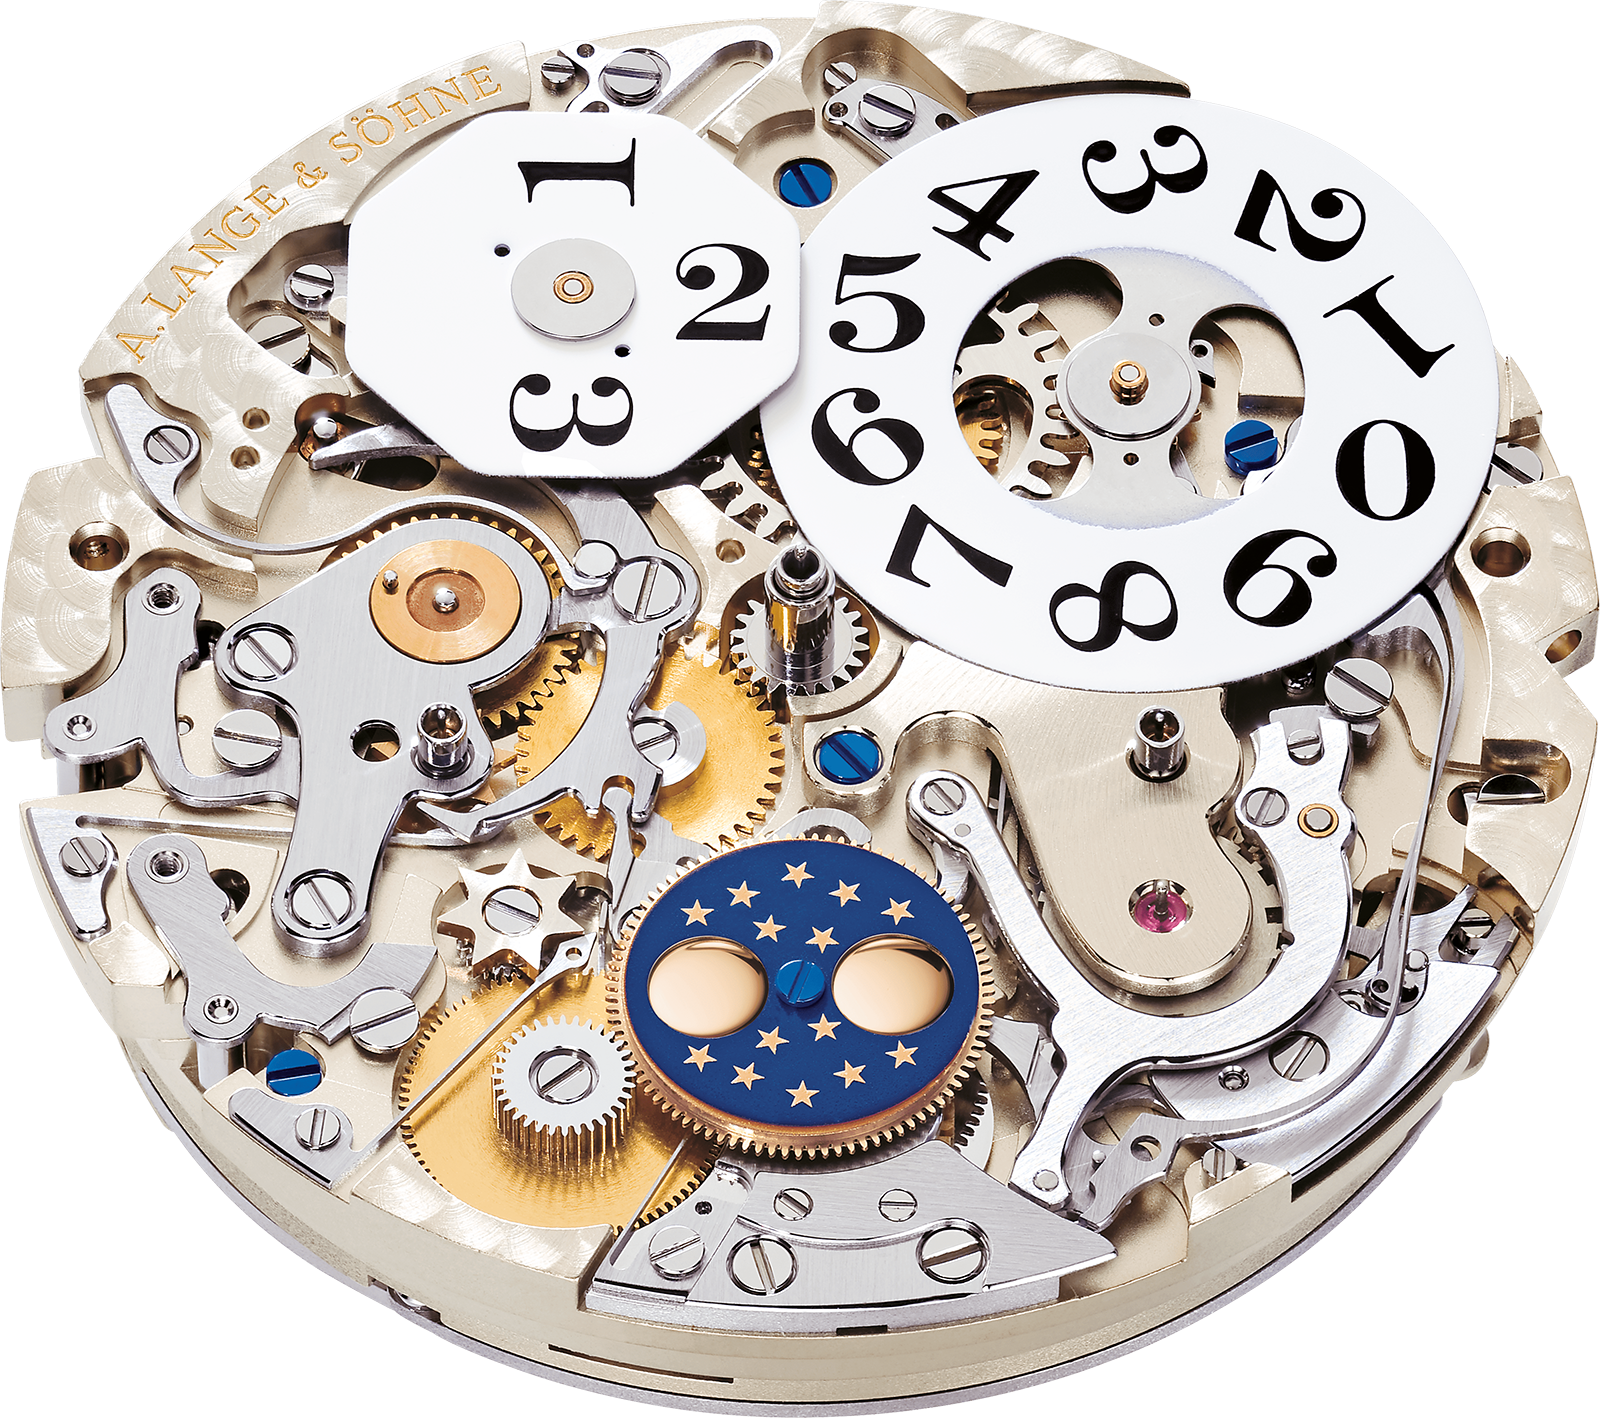 The Cal L952.1 of the Datograph Perpetual. Photo – A. Lange & Söhne